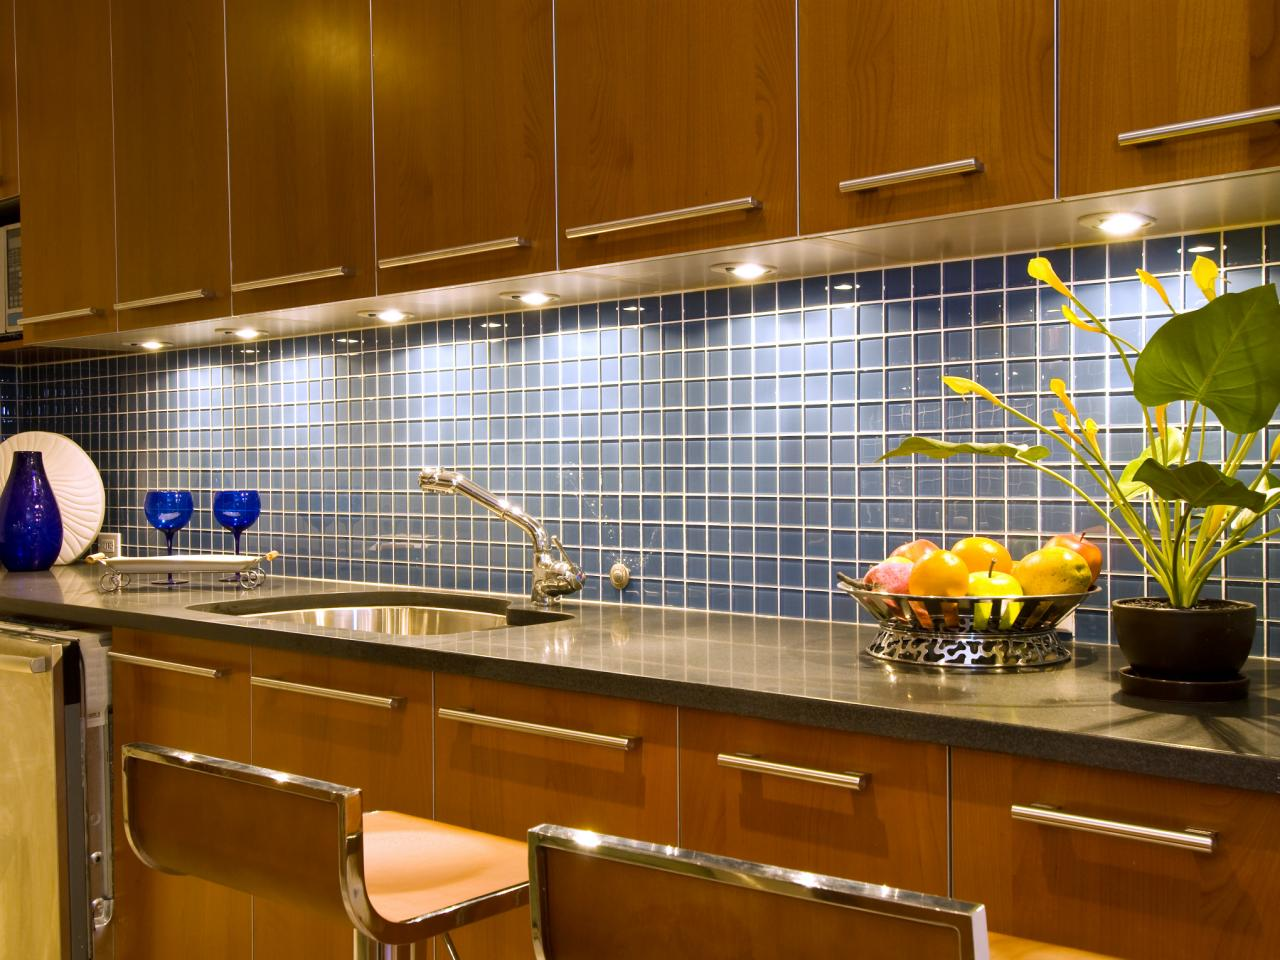 awesome Kitchen Tiles Design Images #4: Style Your Kitchen with the Latest in Tile